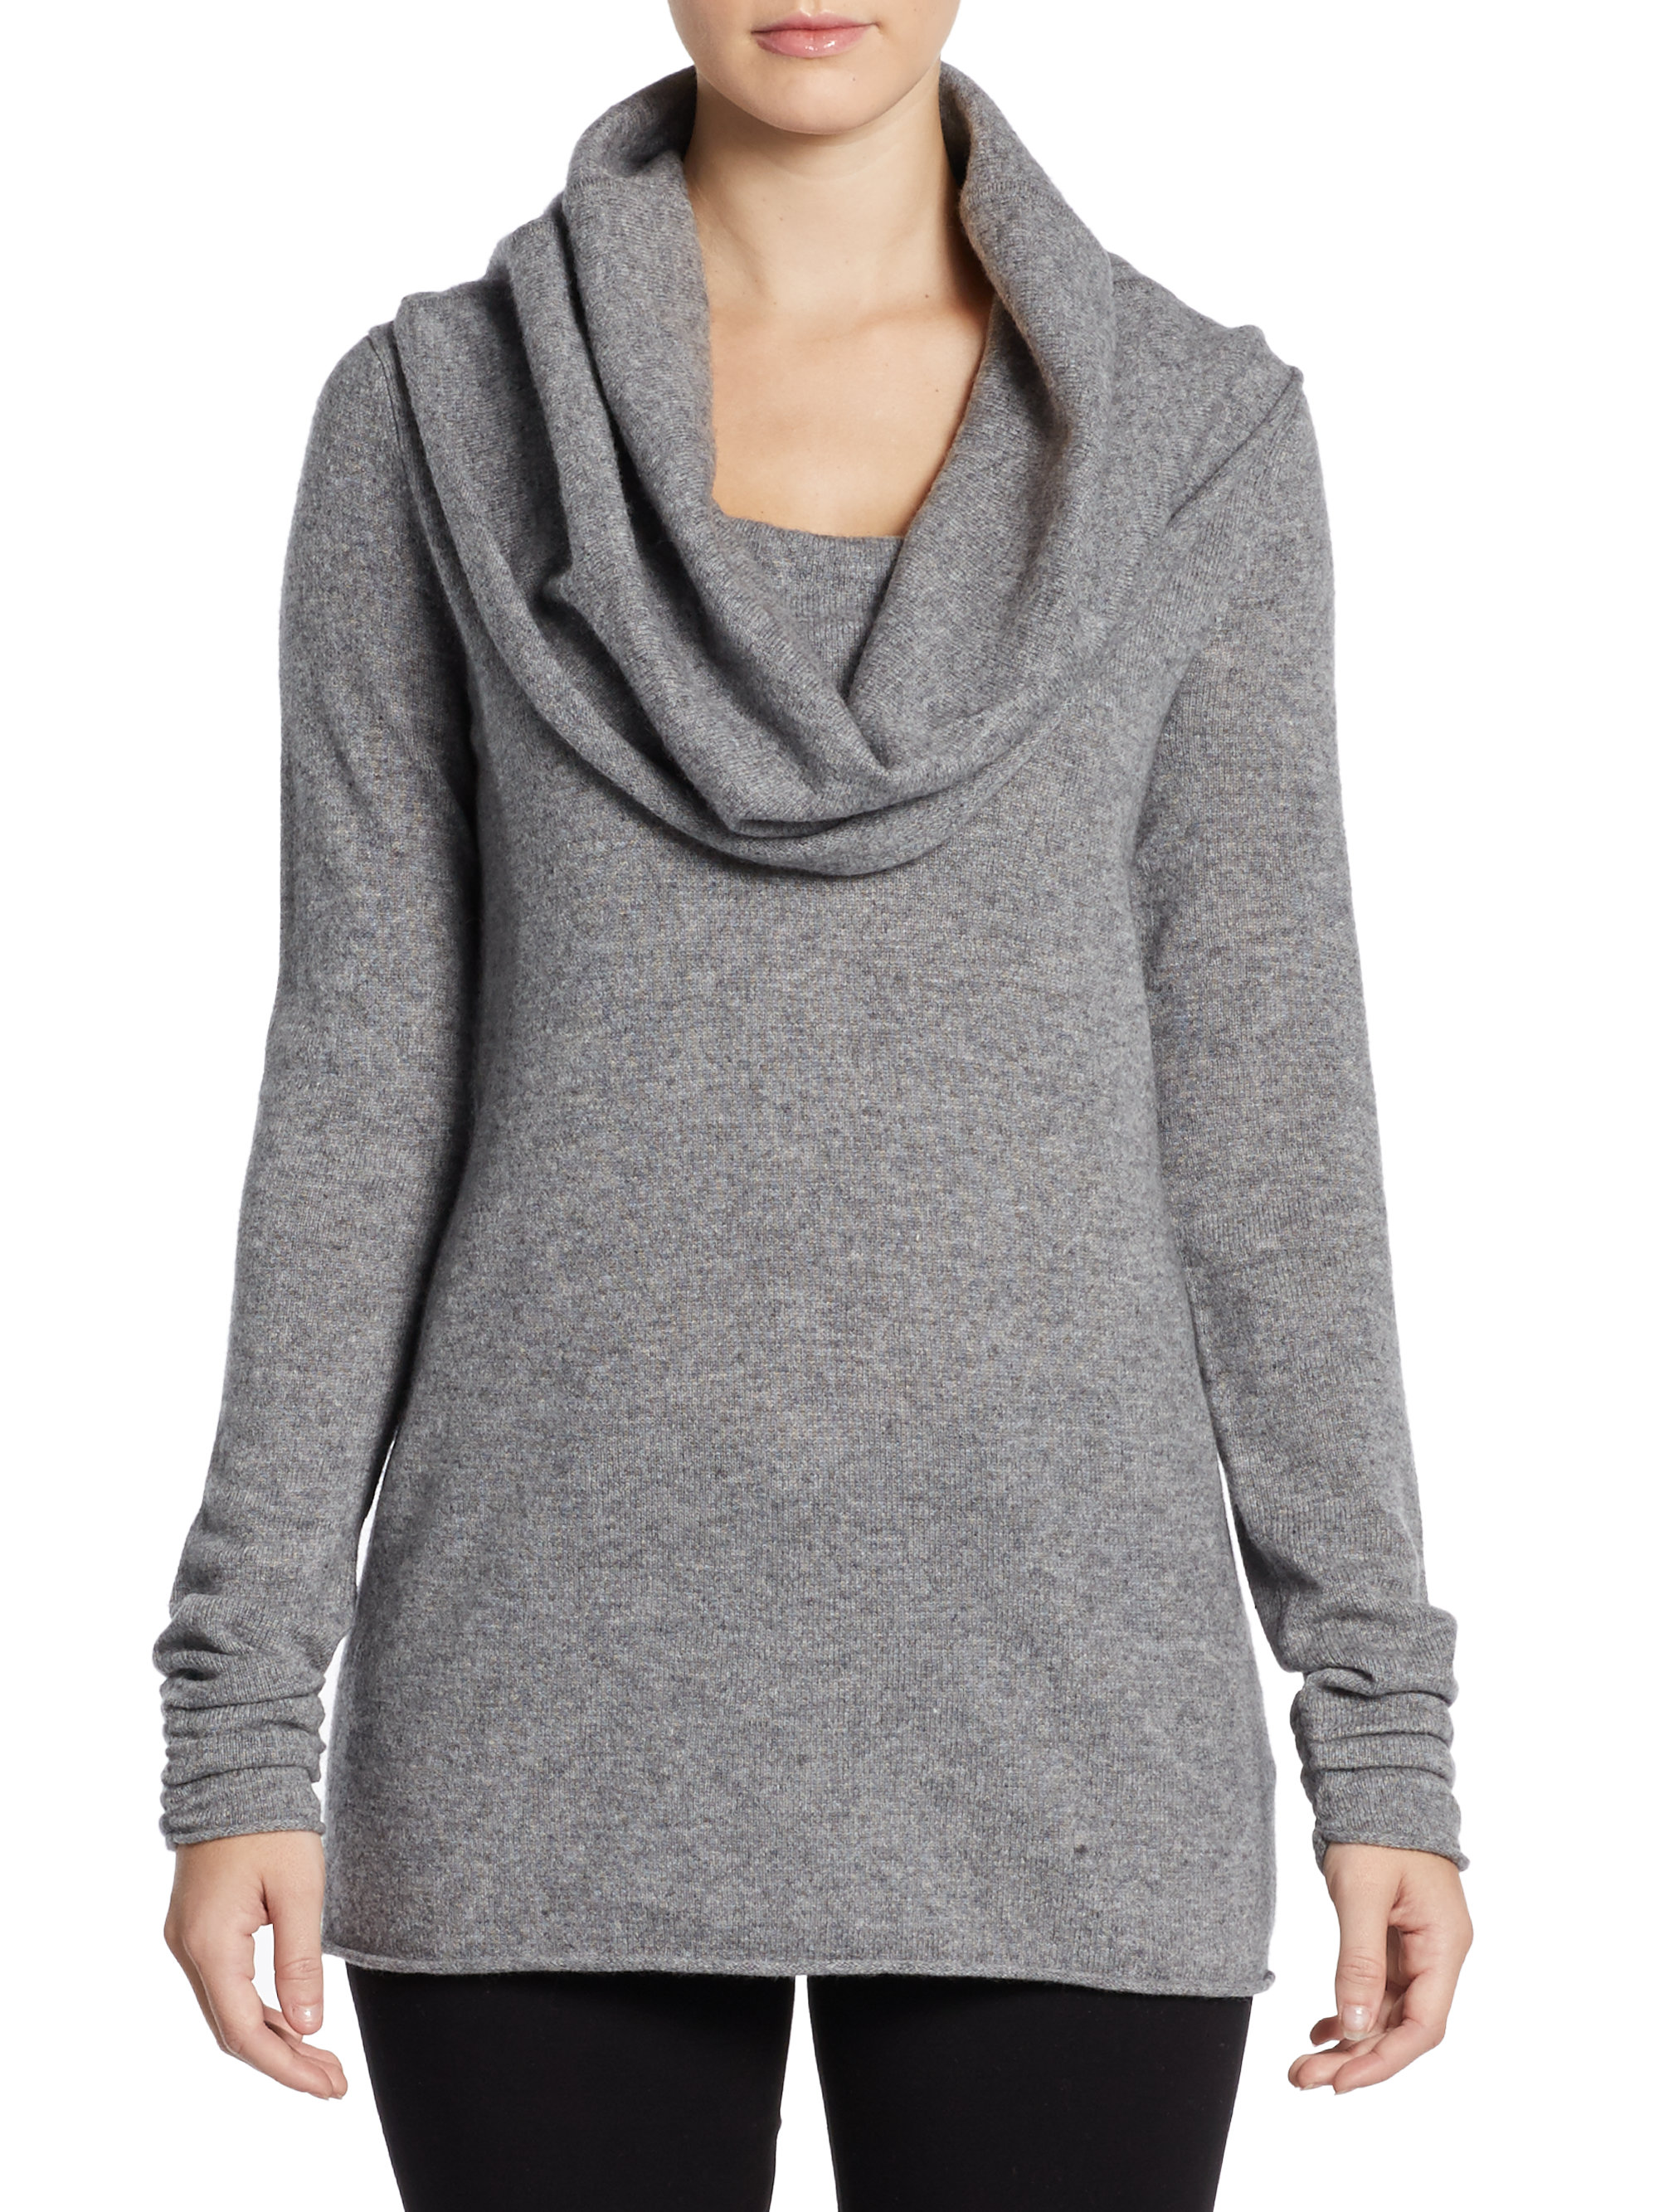 Saks fifth avenue black Cashmere Cowl Neck Sweater in Gray | Lyst